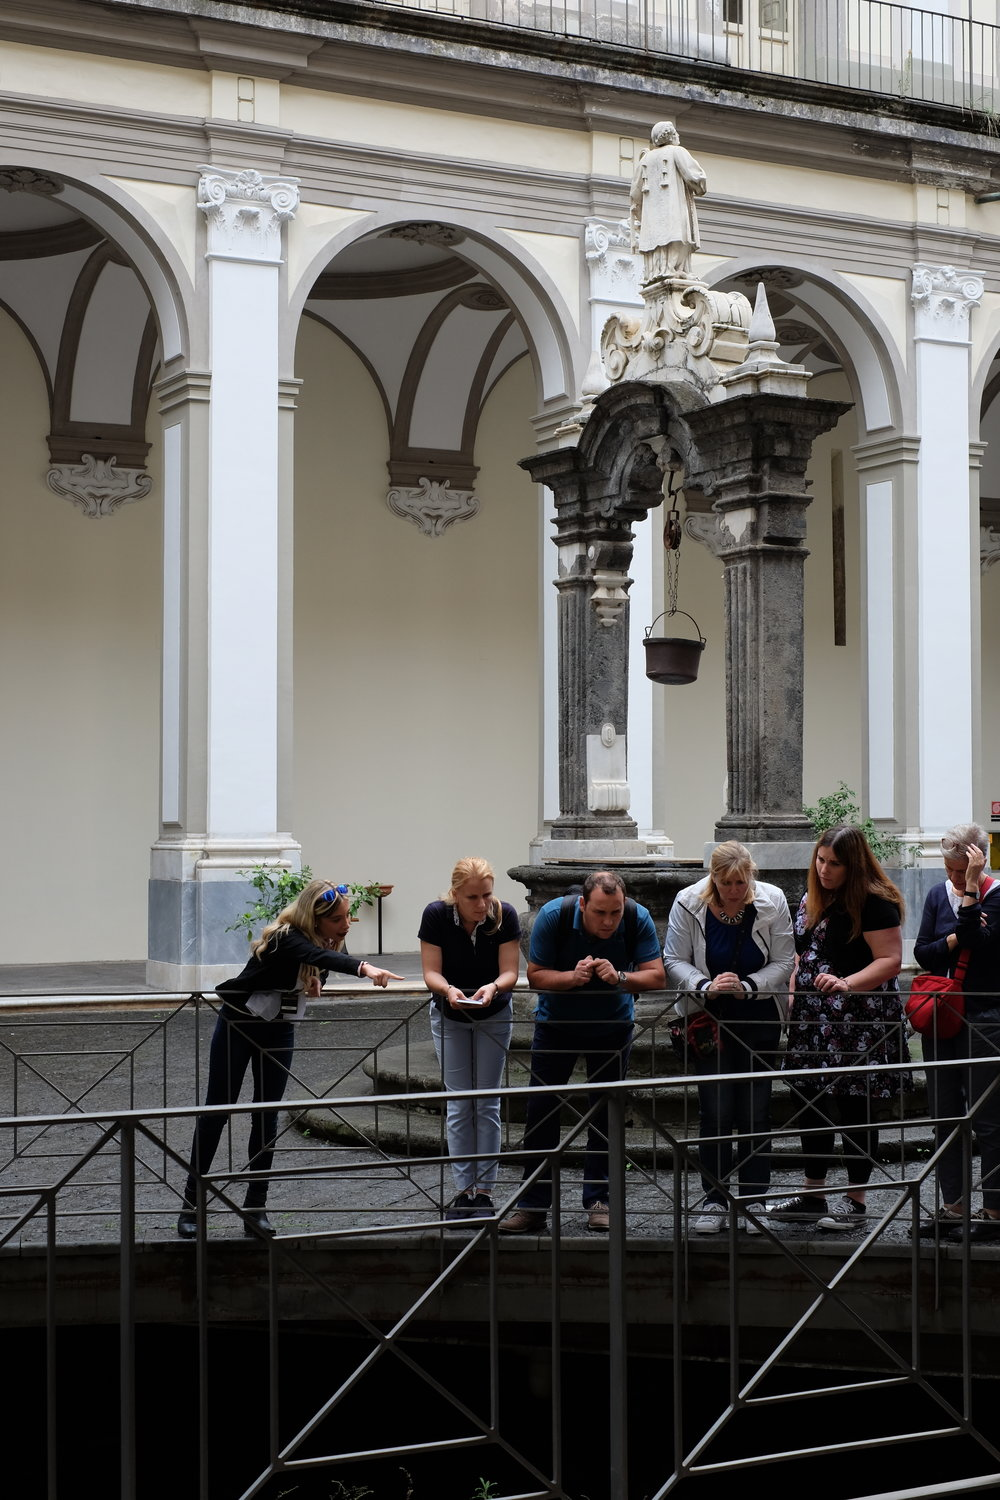 Guided tour, showing the underground origins of the church.